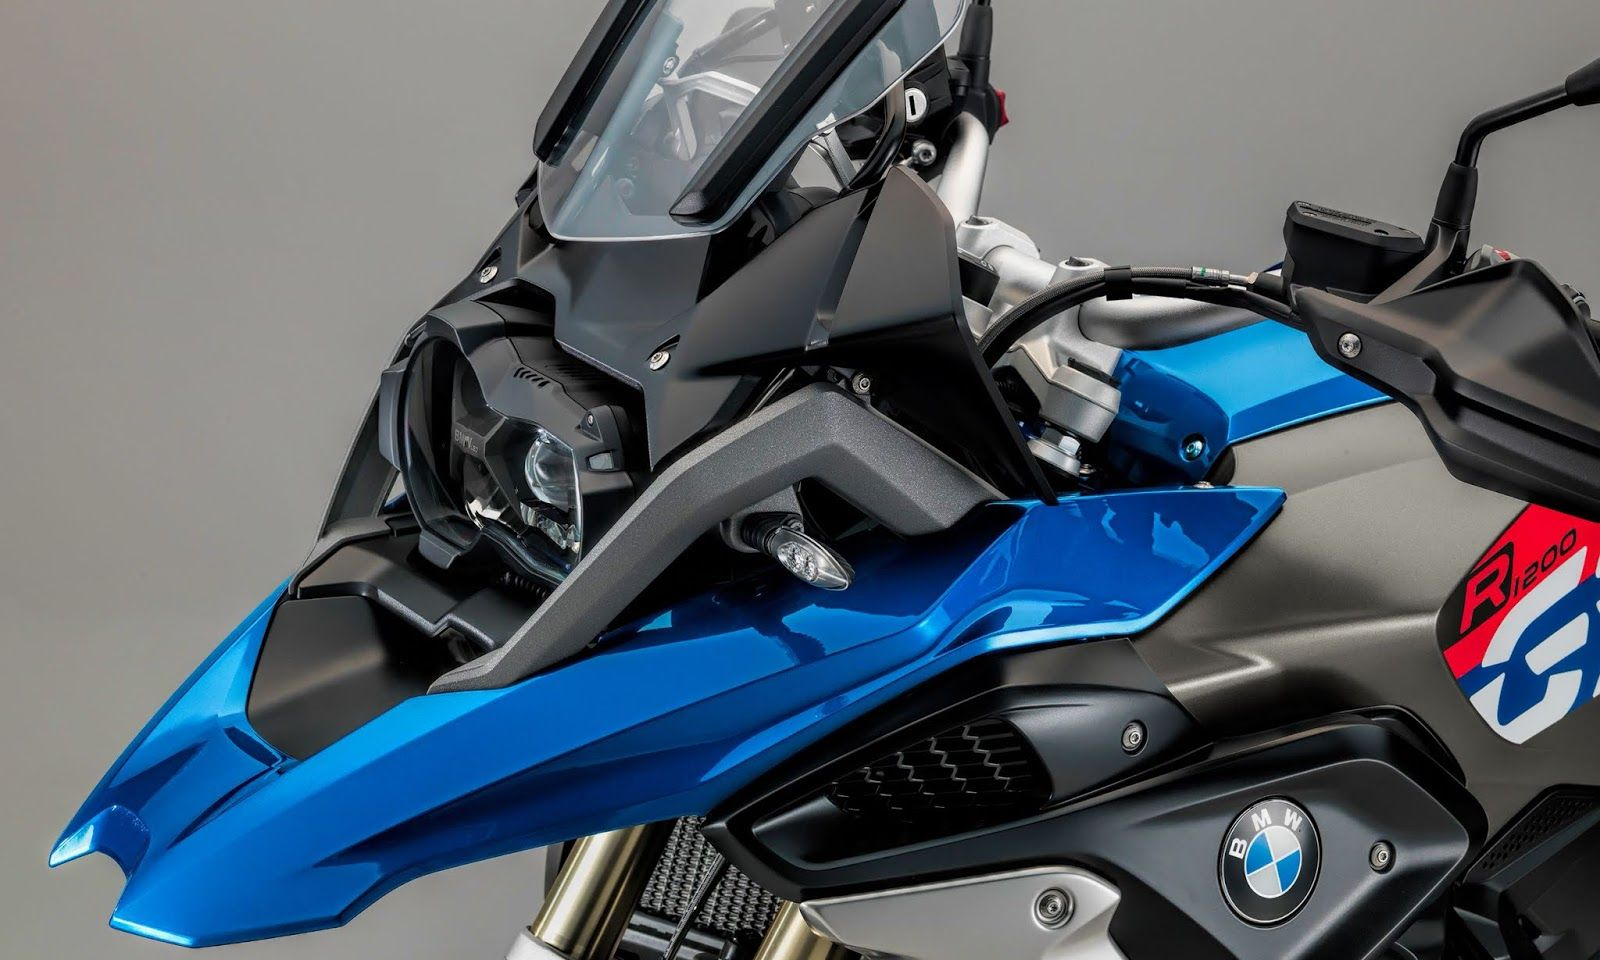 Bmw Gs 1200 Hd Wallpapers Free Download This Bmw Bikes R 1200gs Are Adventure Bikes Which Are Manufactured In Berlin Ger 2017 Bmw Bmw Motorbikes Bmw Motorrad